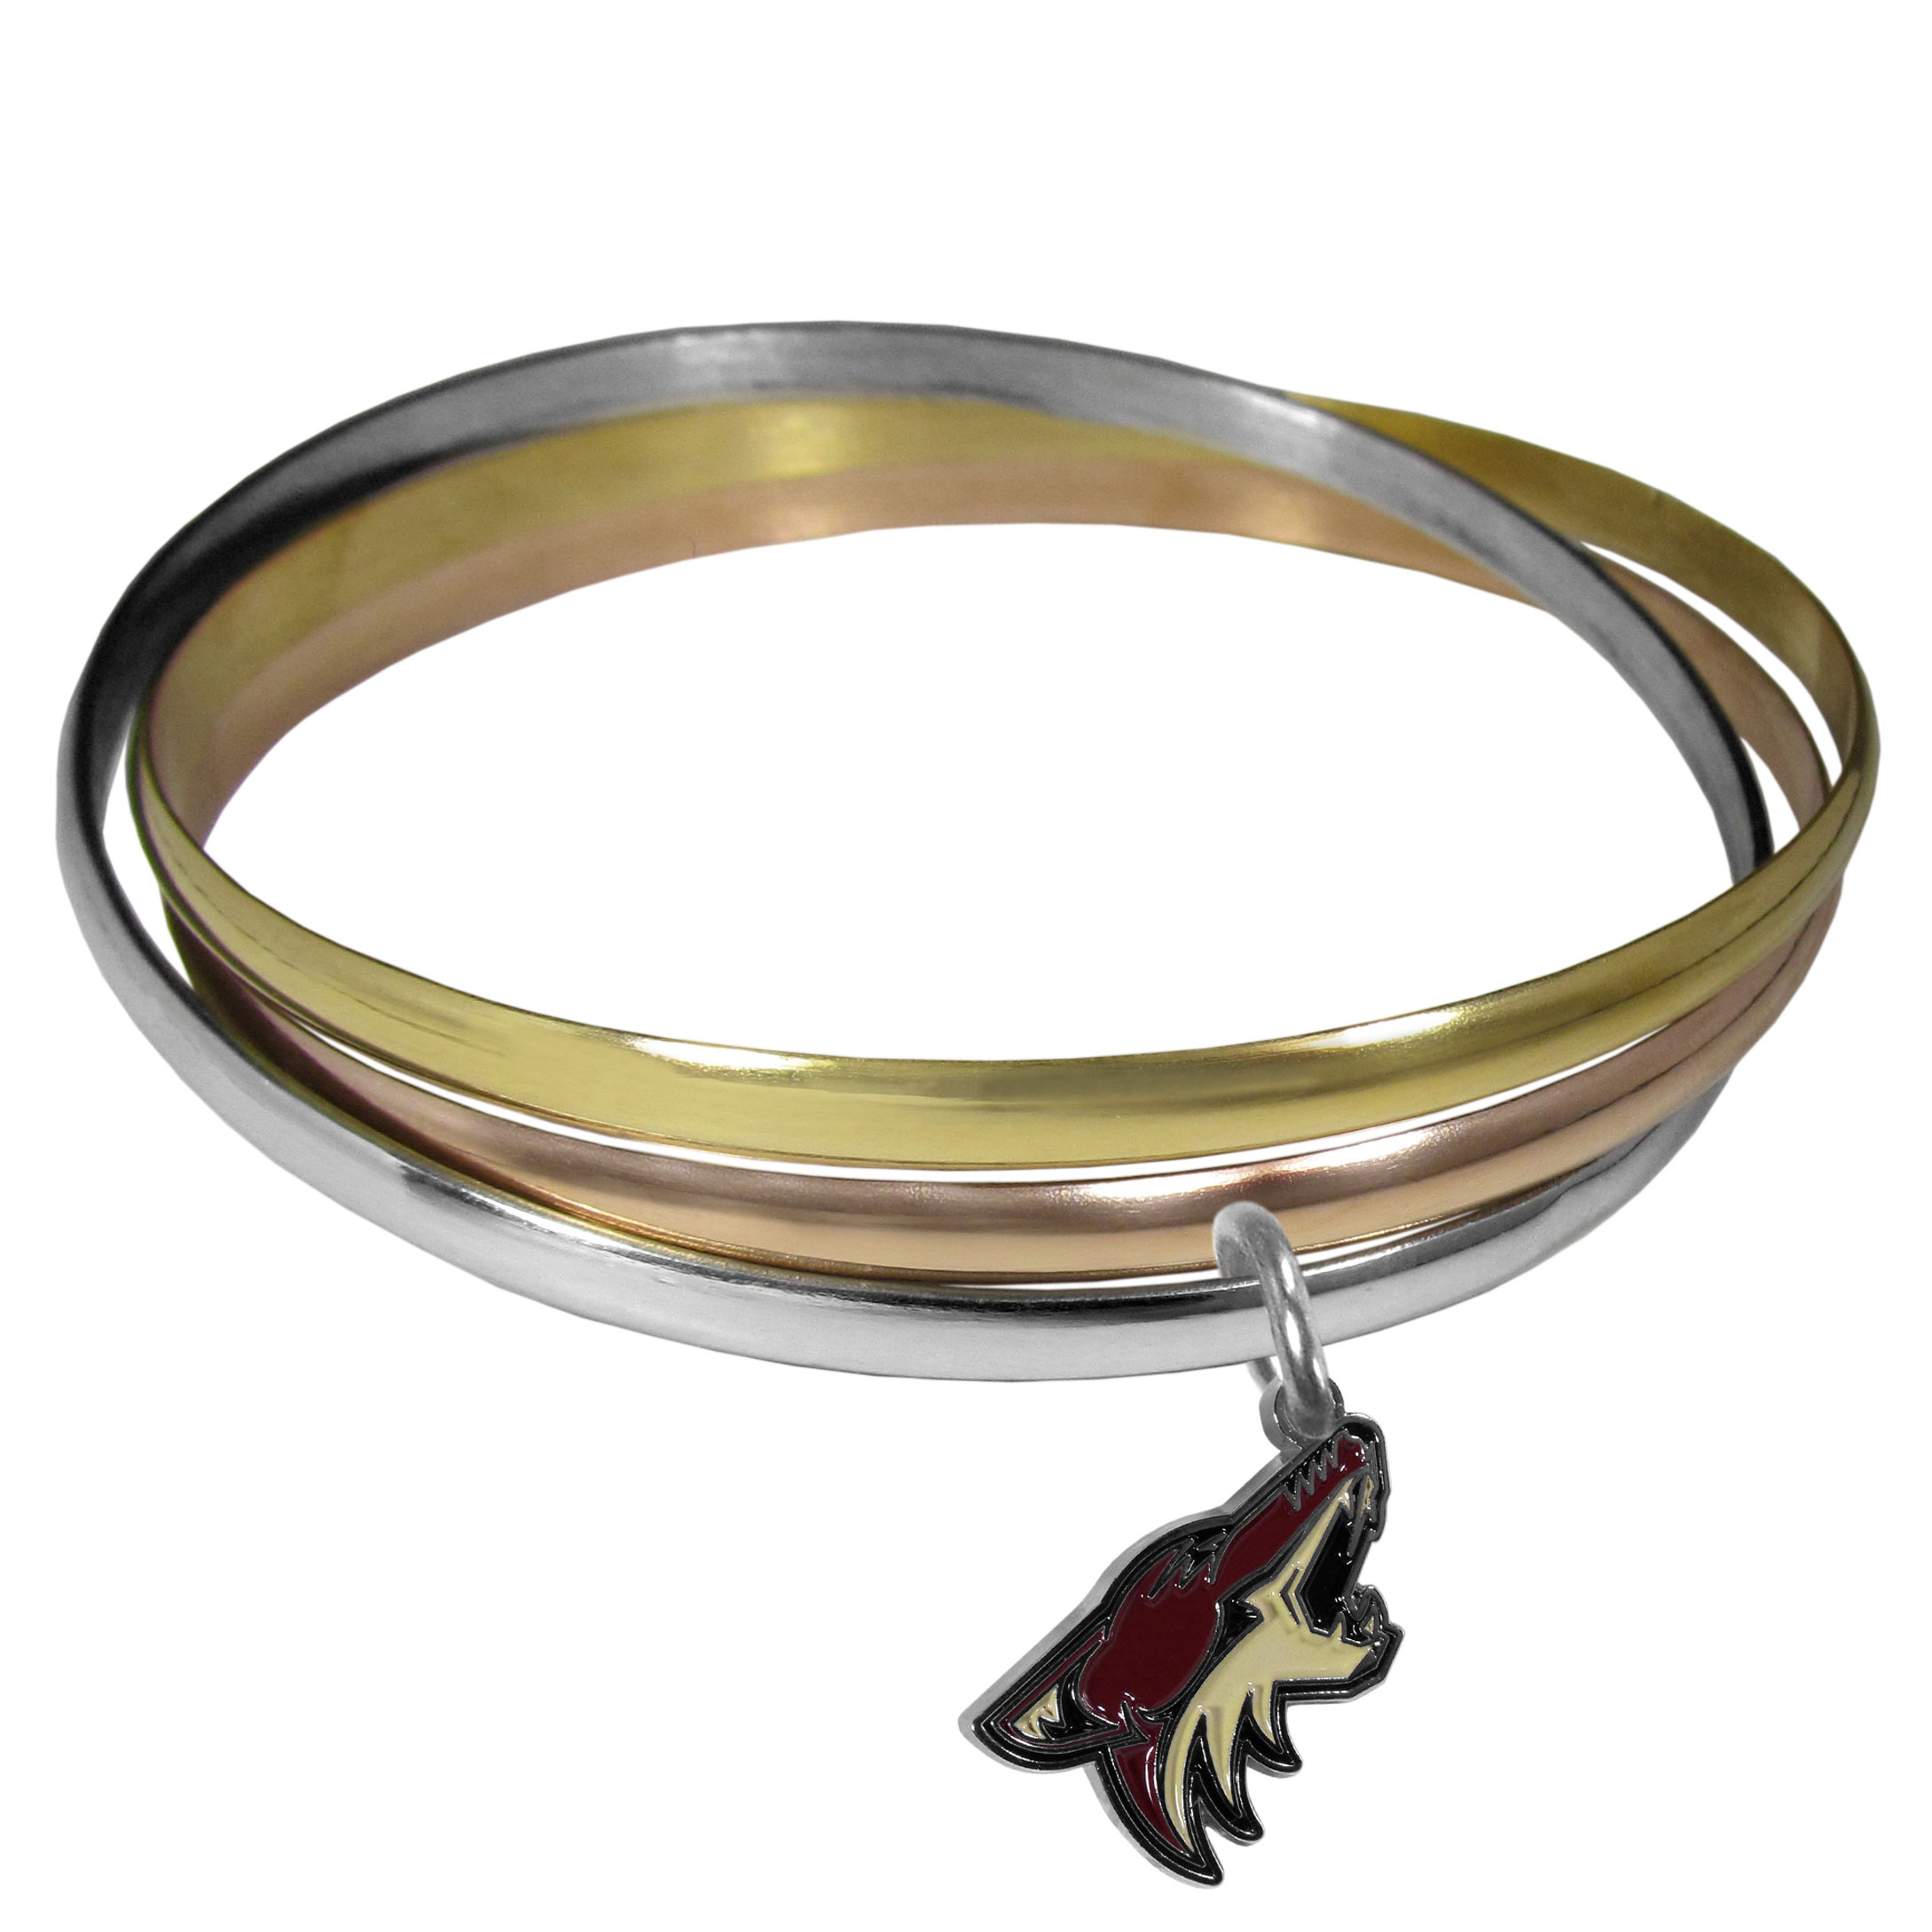 Arizona Coyotes® Tri-color Bangle Bracelet - These beautiful bangles come in a interlocking style and feature a fully cast Arizona Coyotes® charm with enameled team colors. The bracelet has a silver toned bangle, gold tone bangle and brass toned bangle.